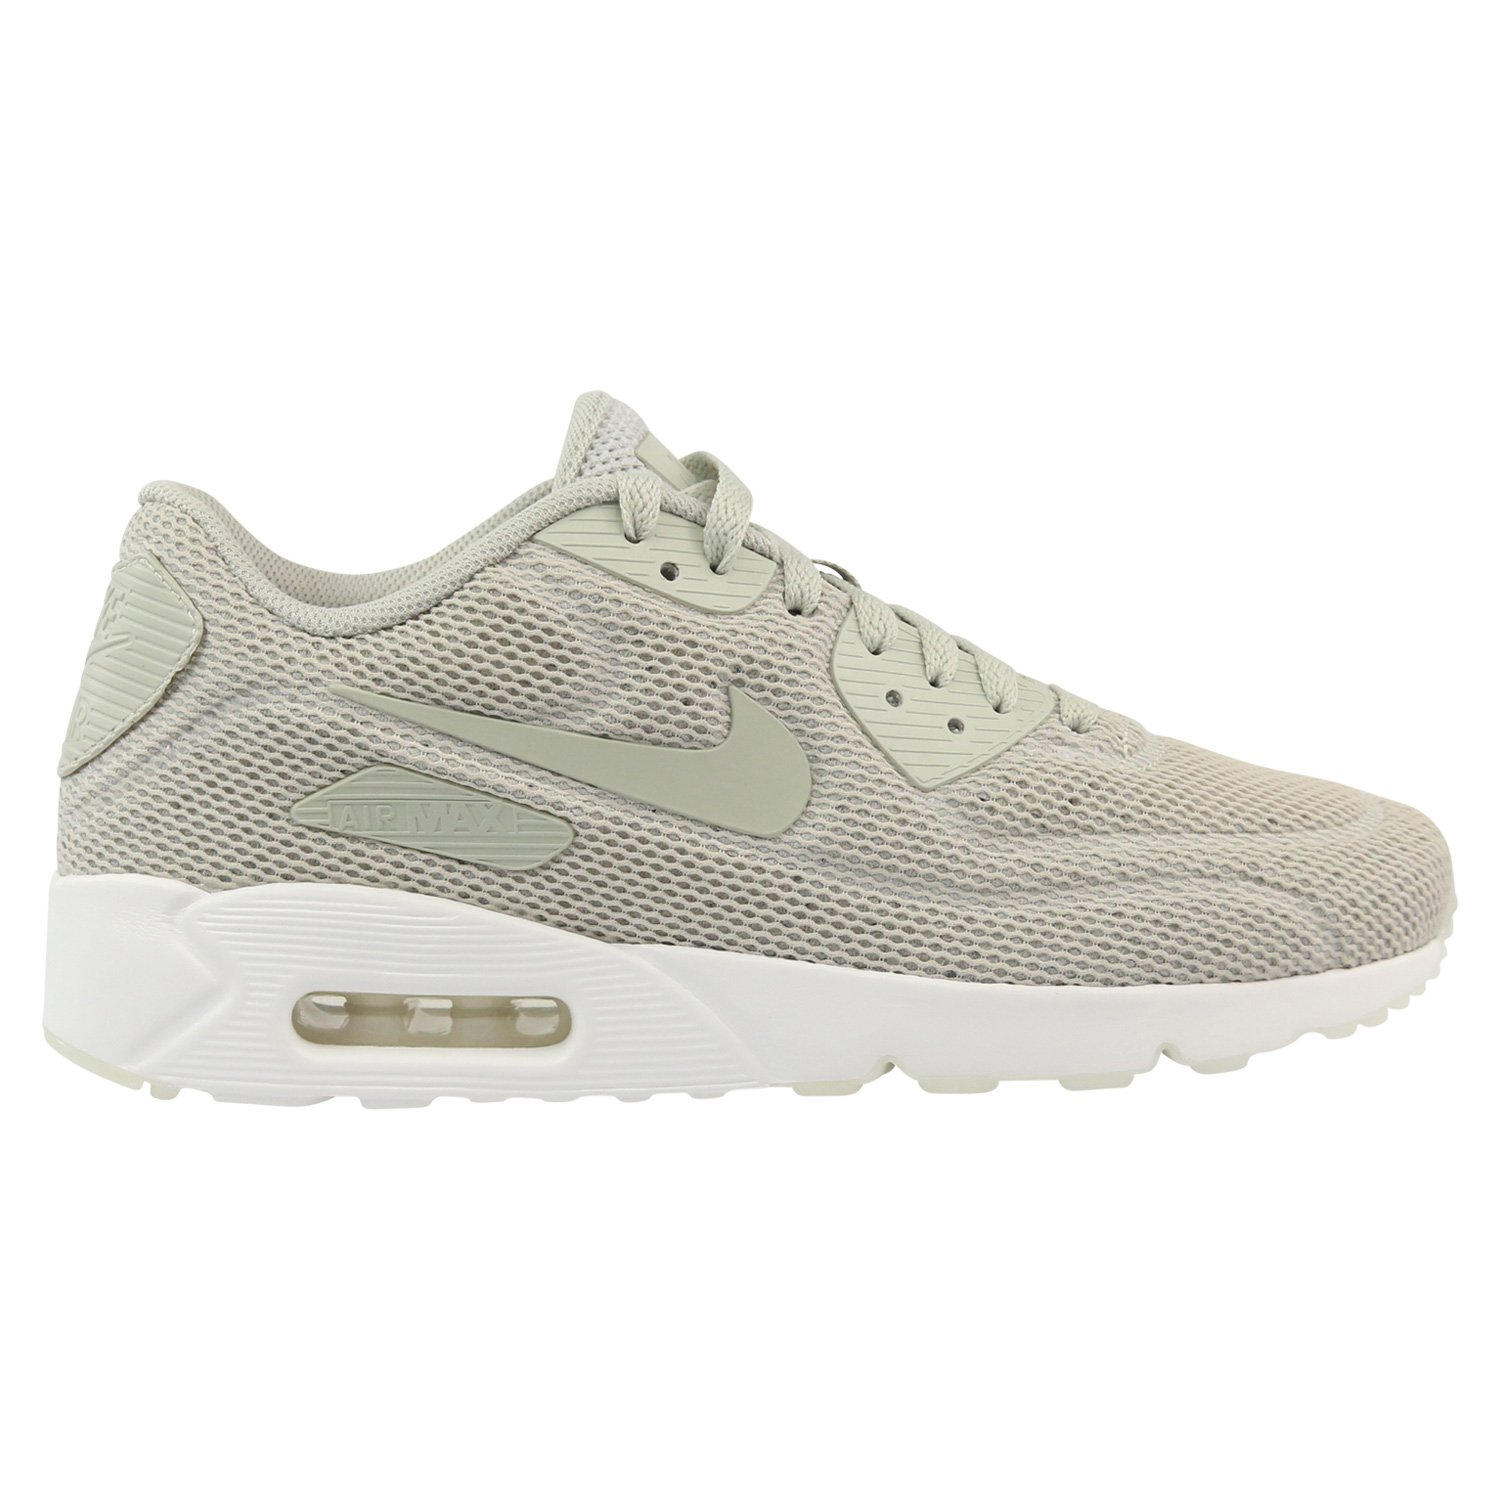 NIKE Air Max 90 Ultra 2.0 Br Mens